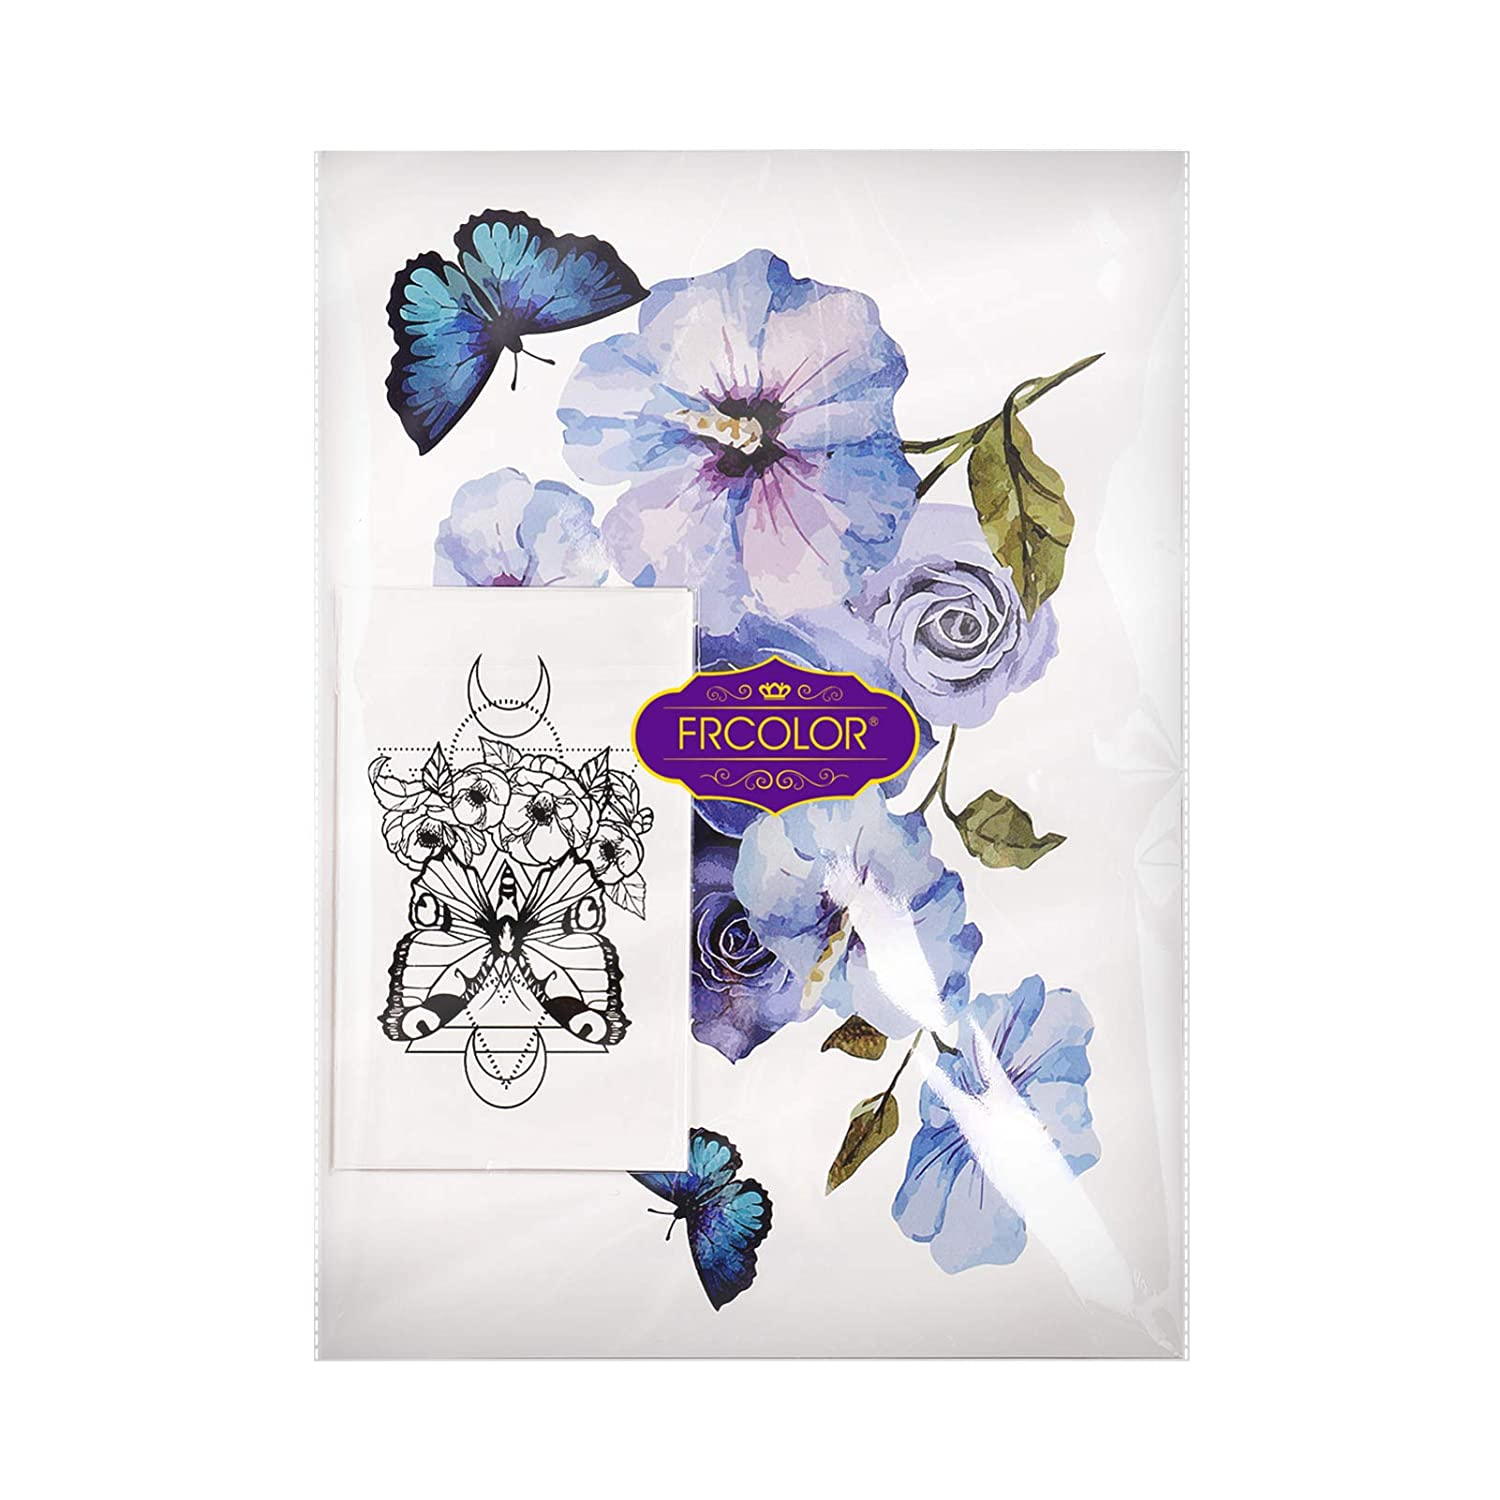 Body Stickers, Large 3D Flower Rose Butterflies Temporary Flower Tattoos Stickers, 30 Sheets